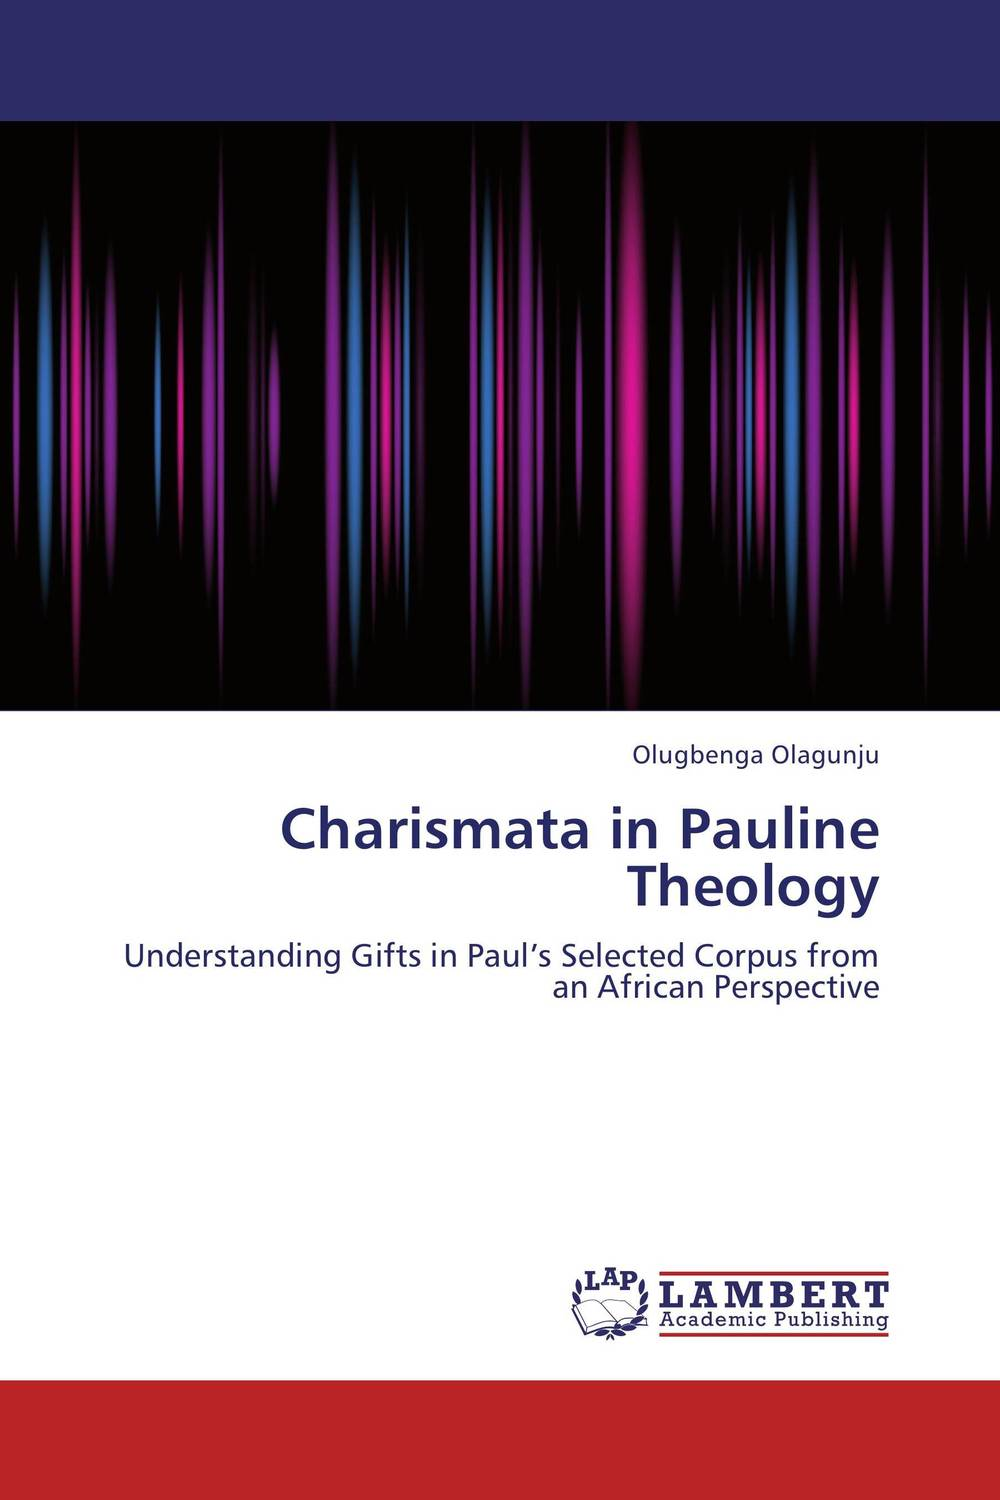 Charismata in Pauline Theology sola scriptura benedict xvi s theology of the word of god